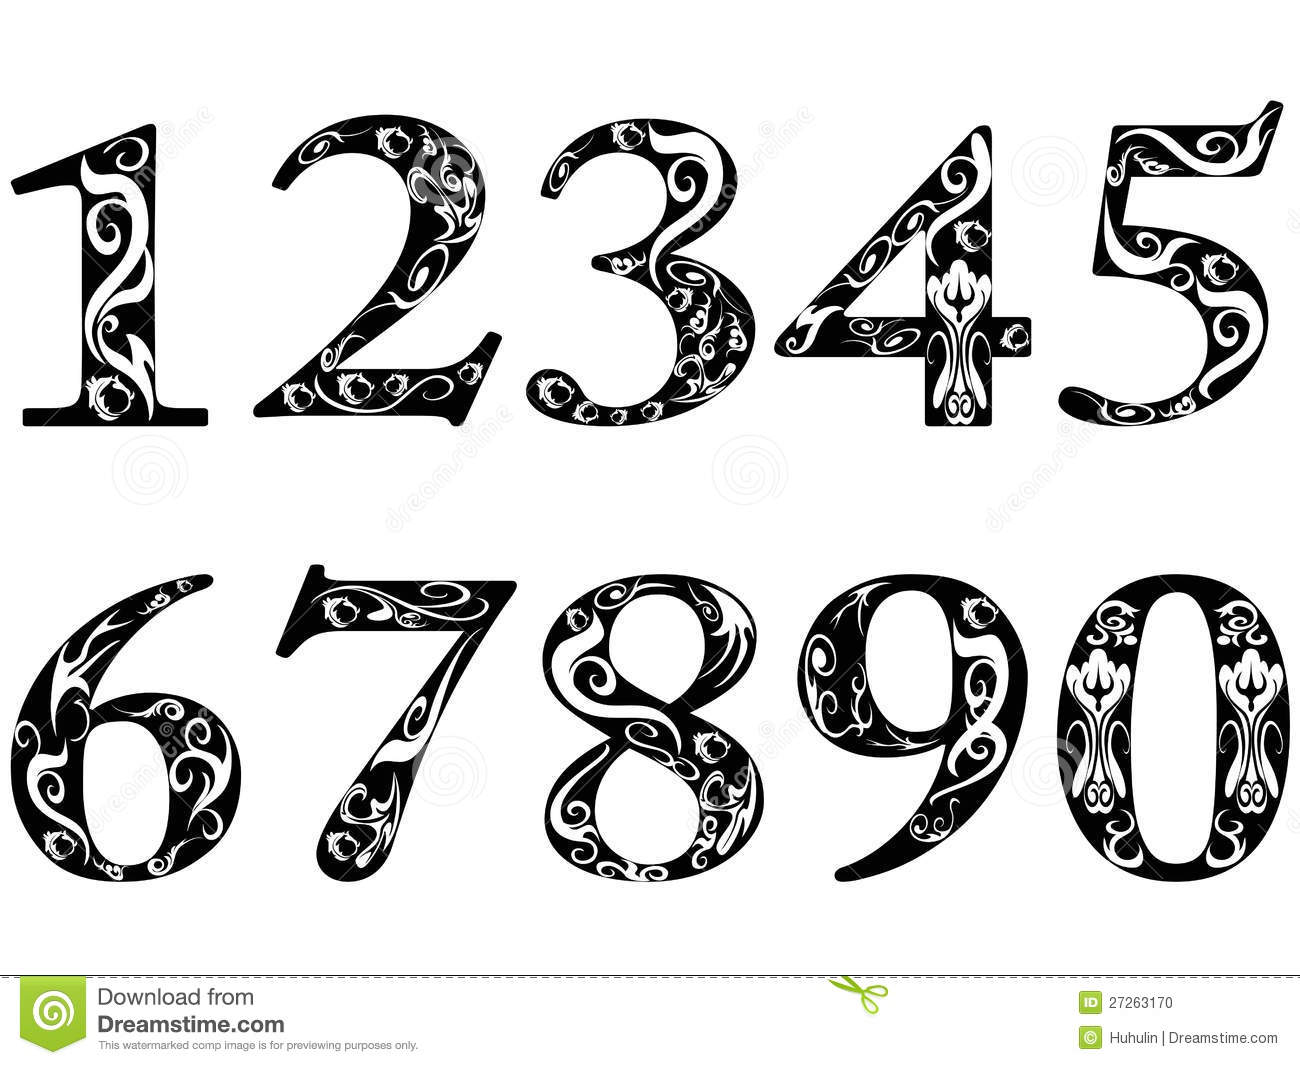 11 vintage number font 1 images vintage number fonts for Classic house number fonts